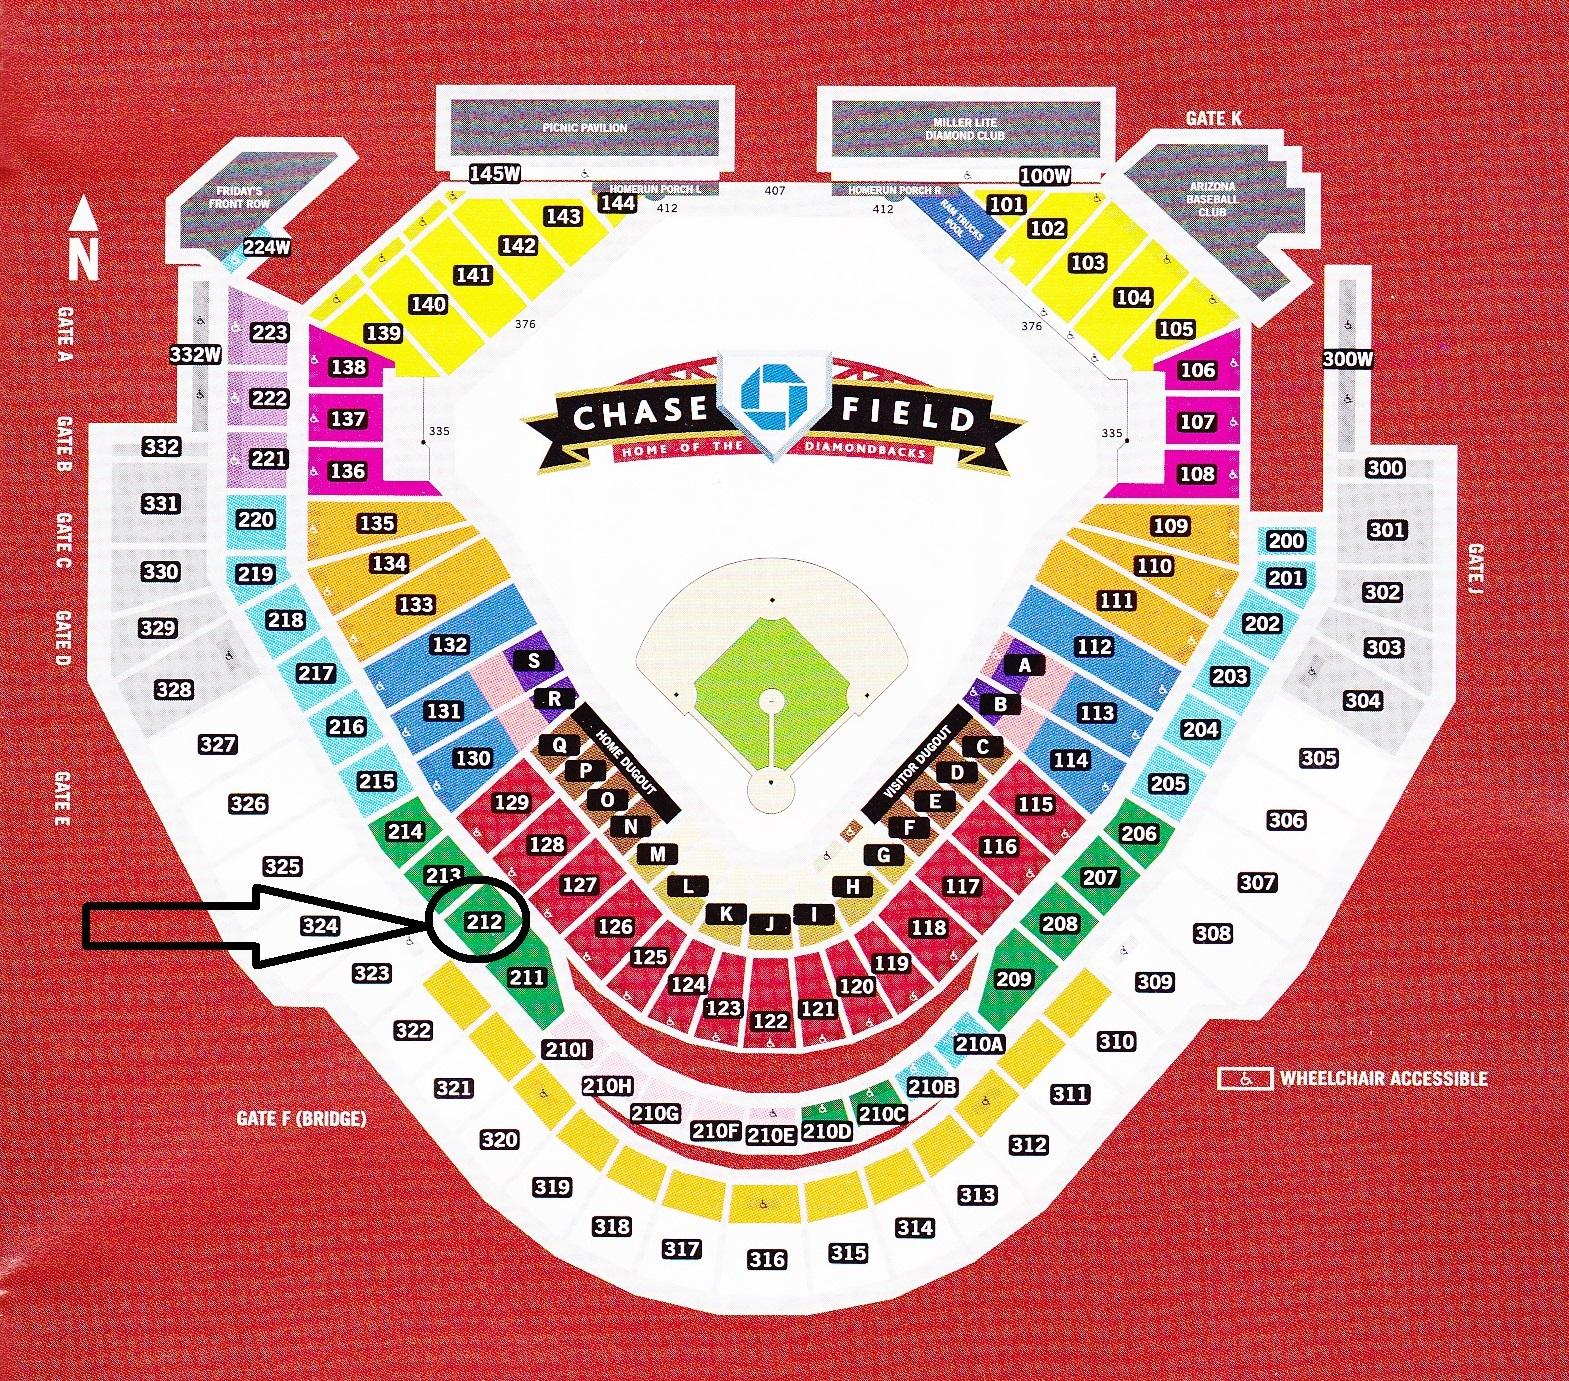 Chase-Field-Seating-Chart Diamondbacks Stadium Map on one direction nationals park ticket map, mlb fan map, chase east map, rangers seating map, houston astros seating map, diamondbacks logo, diamondbacks field, diamondbacks parking, riverview park chicago map, diamondbacks 2013 schedule, diamondbacks symbol, diamondbacks uniforms, diamondbacks concessions, diamondbacks seating, diamondbacks hat, diamondbacks mascot, diamondbacks tickets, diamondbacks jersey, diamondbacks wallpaper, diamondbacks suites,